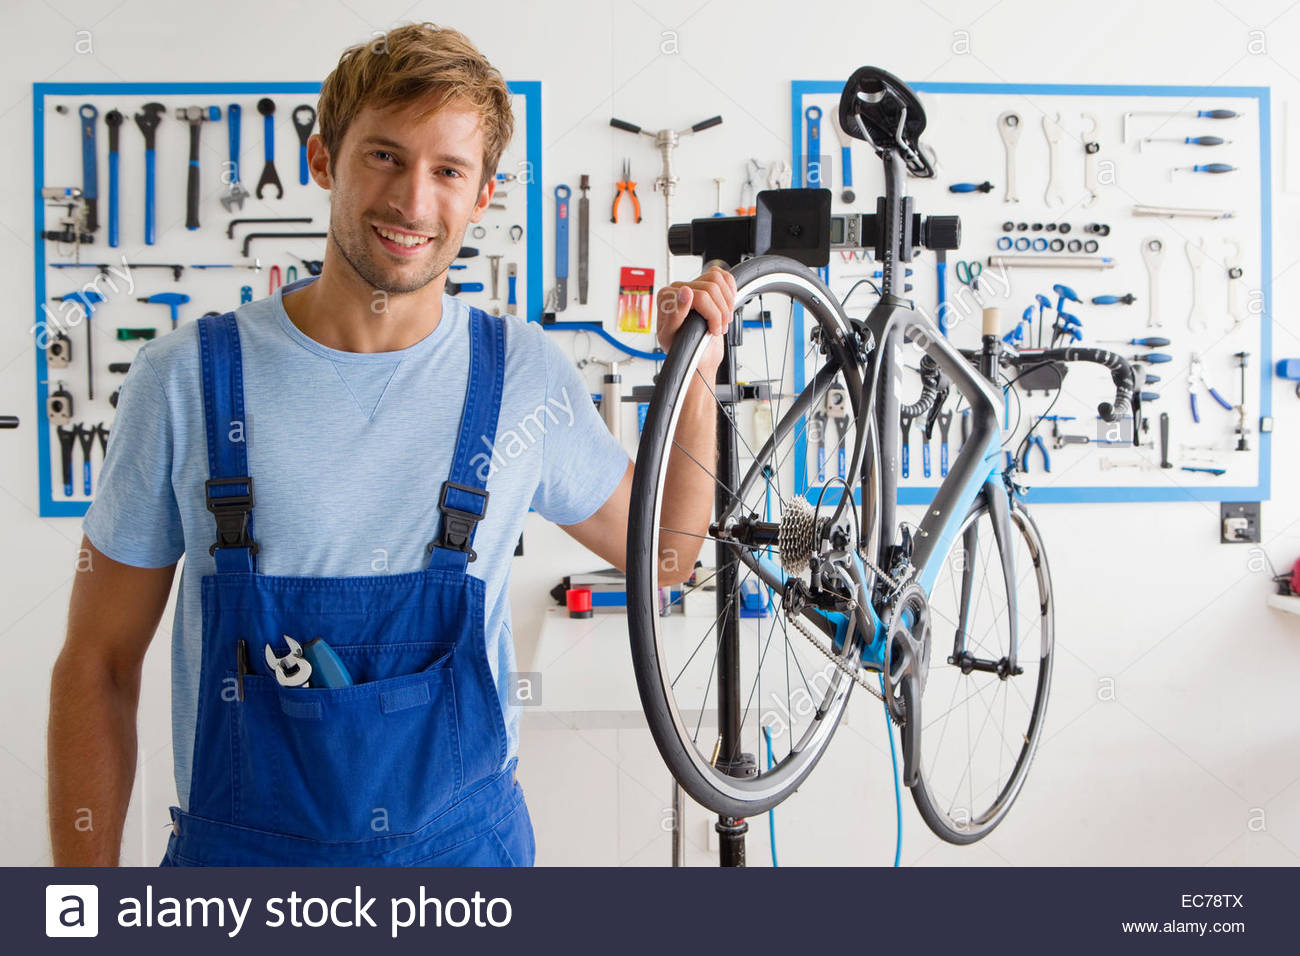 Cycle technician in workshop - Stock Image